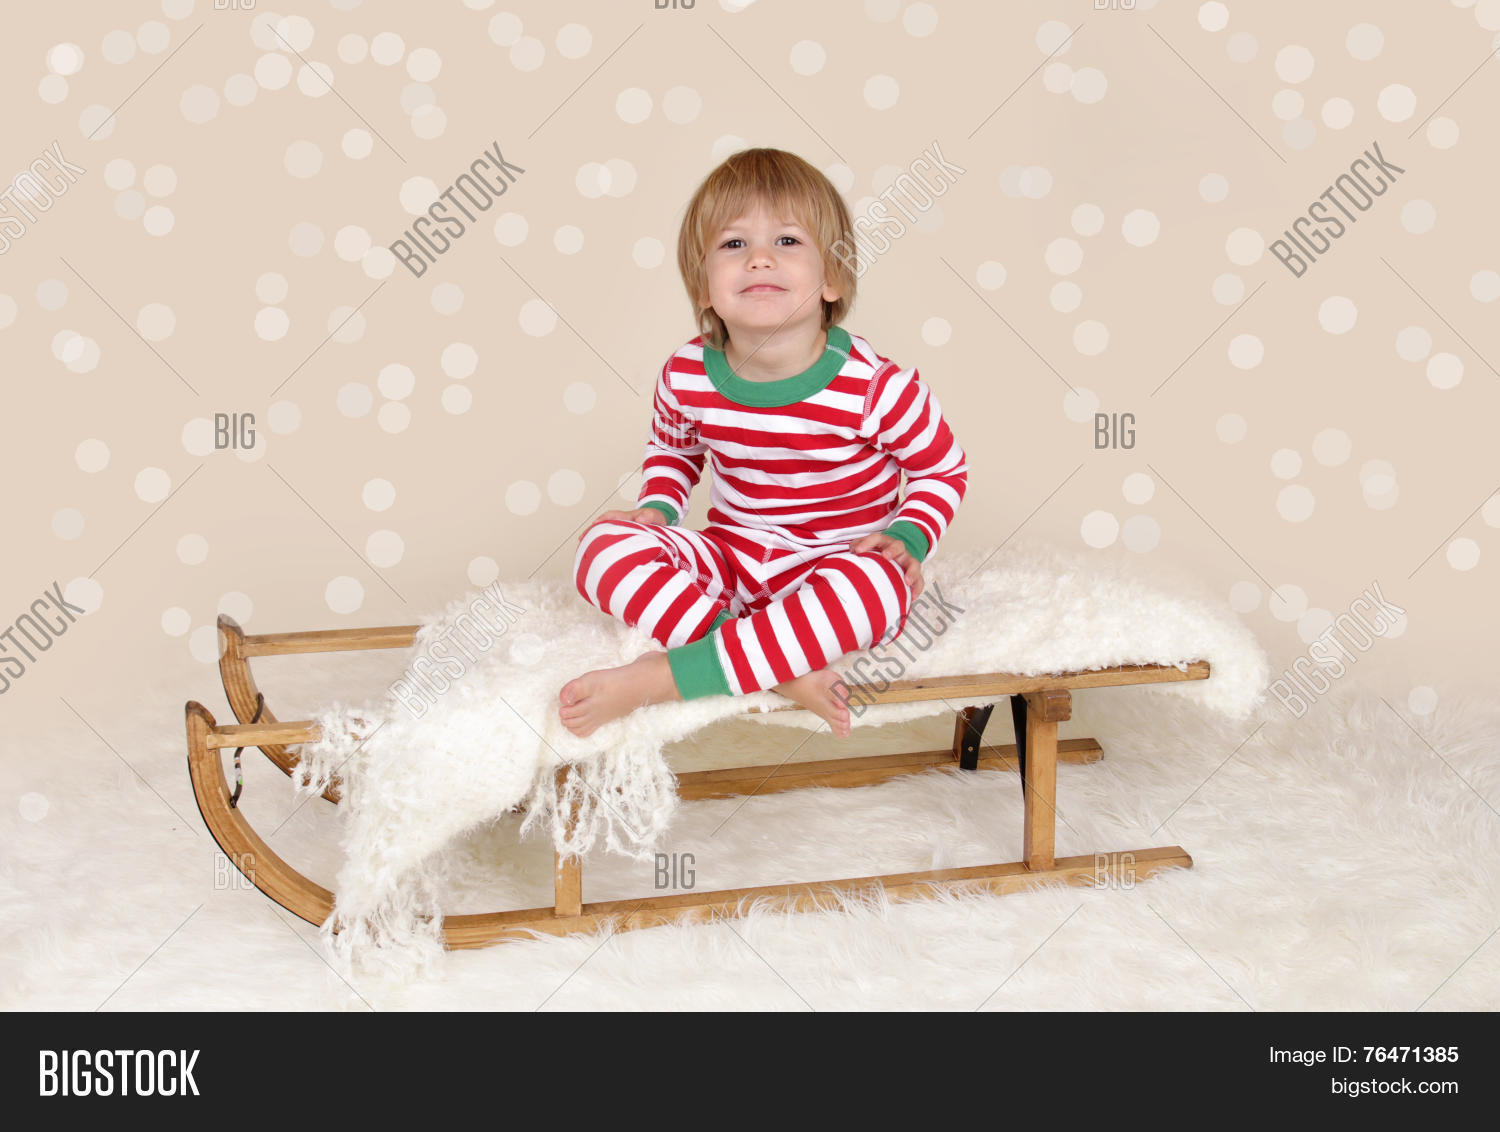 df4d638e67 Winter Holidays  Laughing Happy Child In Christmas Pajamas Sled In Snow